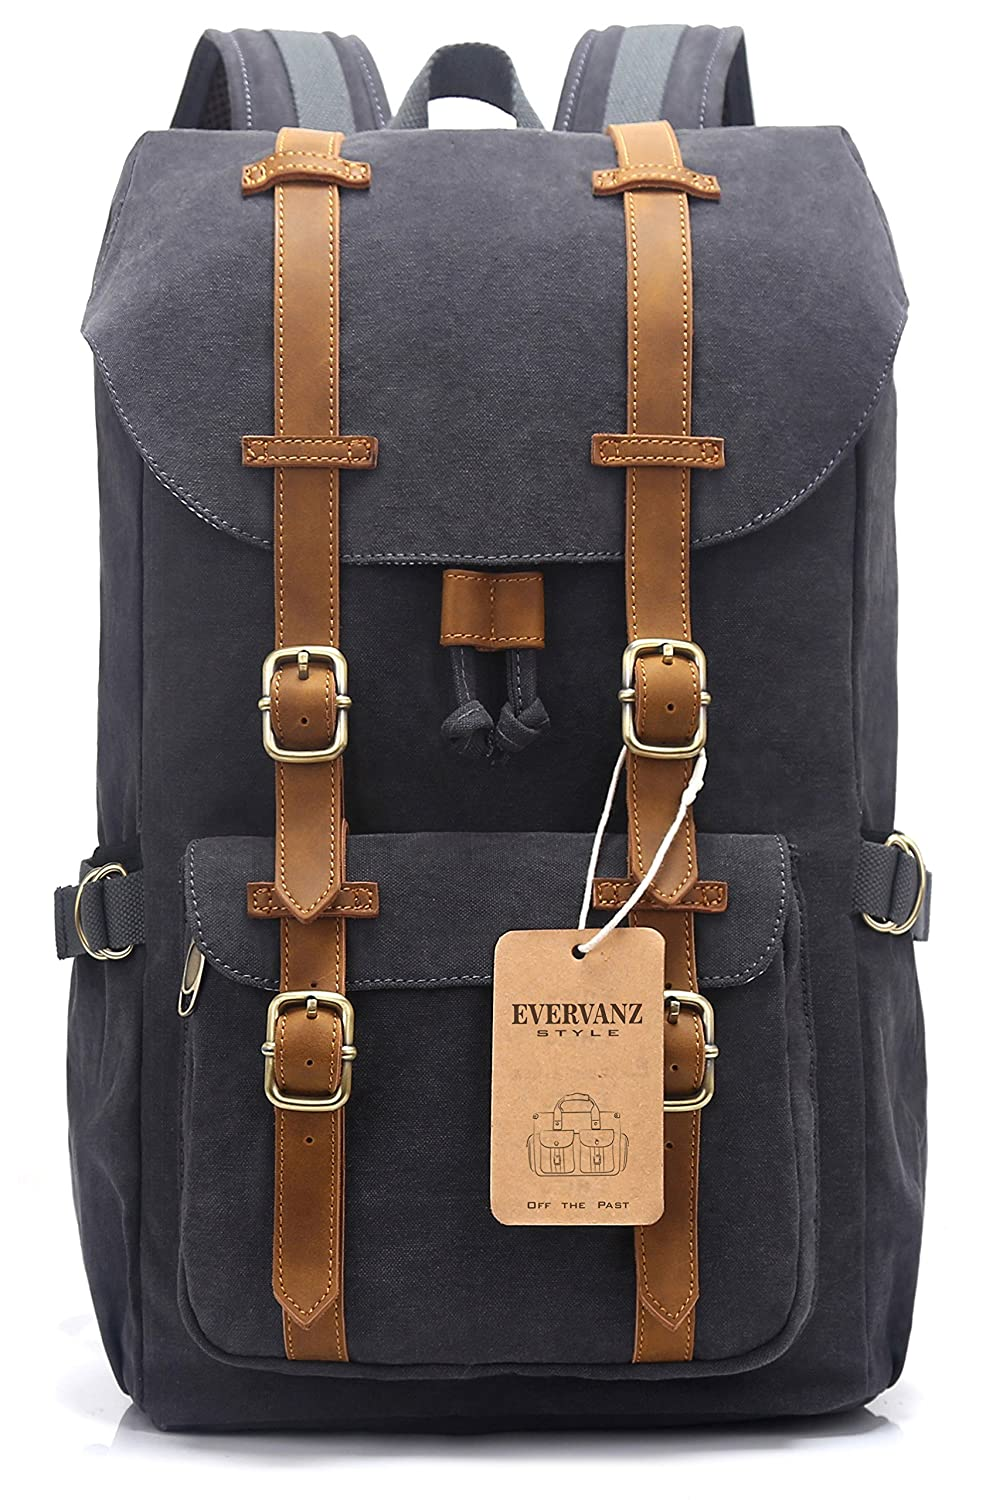 EverVanz Mochila de Lona, ideal aventureros